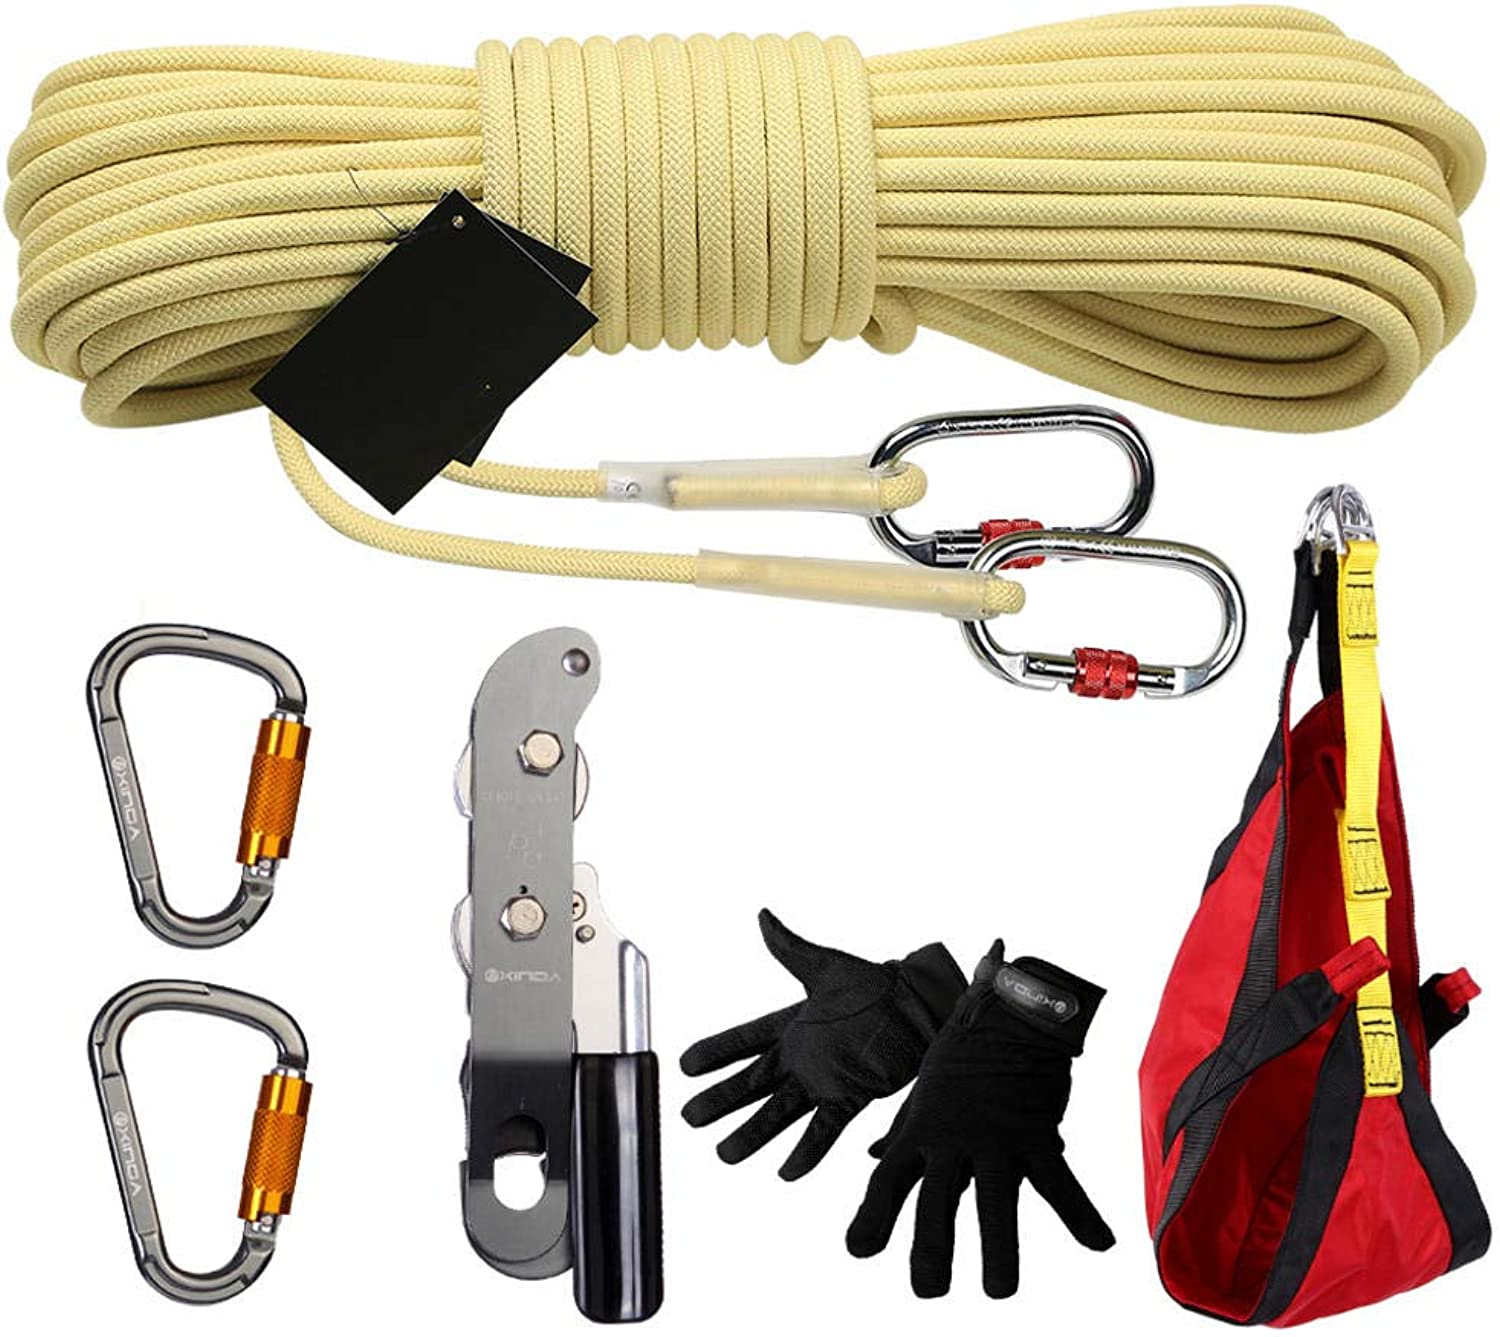 Climbing Kit Rescue Fire Earthquake Emergency Rescue Kit LifeSaving Safety Rope HighLevel Descending Device 7 Pieces